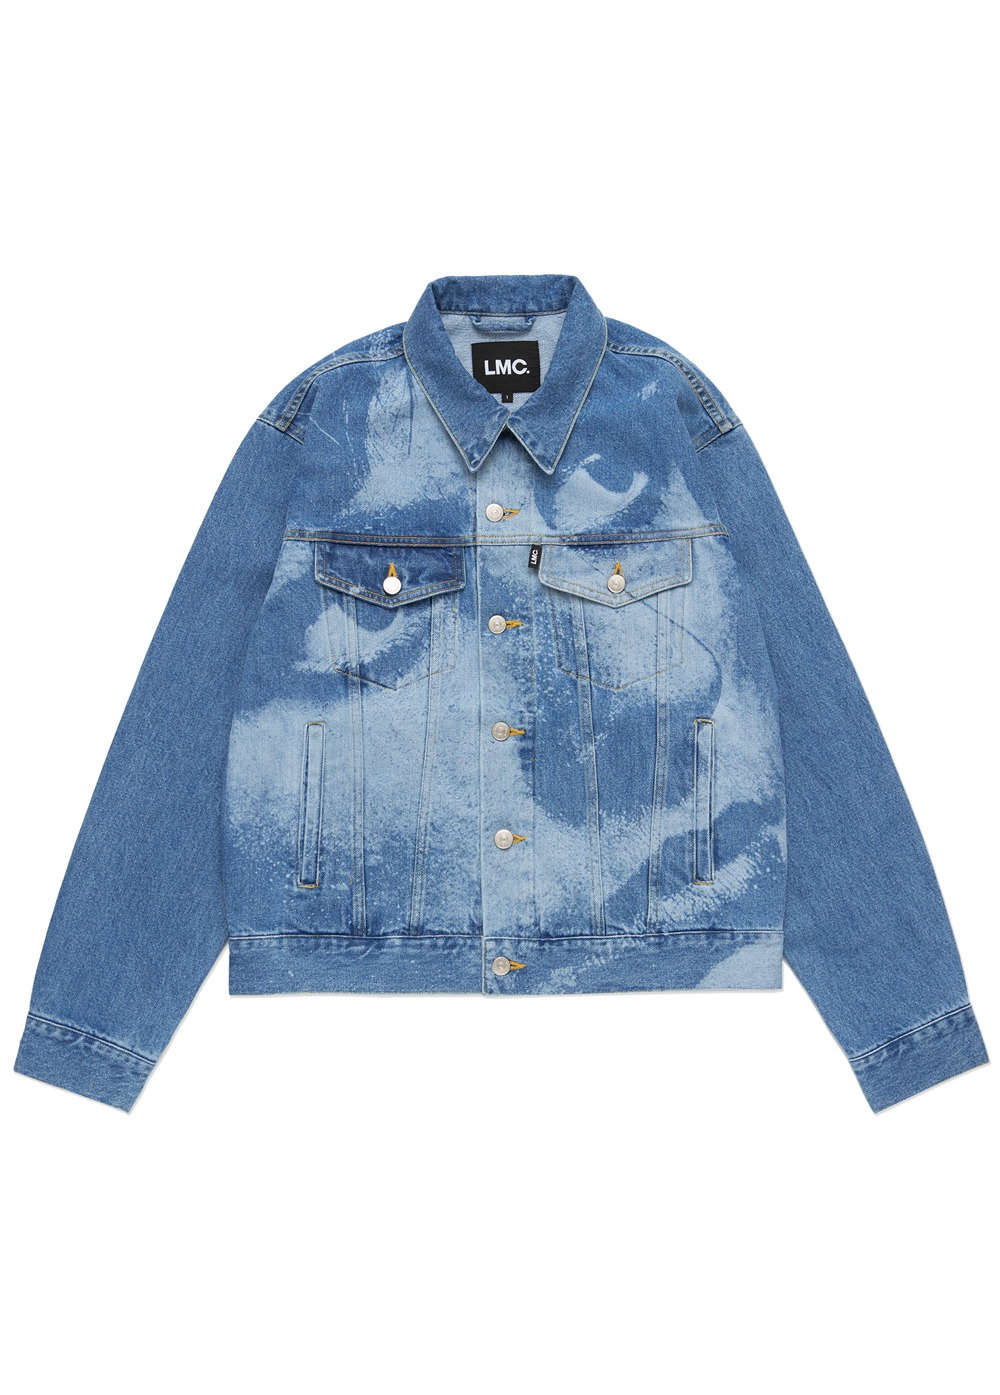 LMC LASER ENGRAVING FACE DENIM JACKET blue